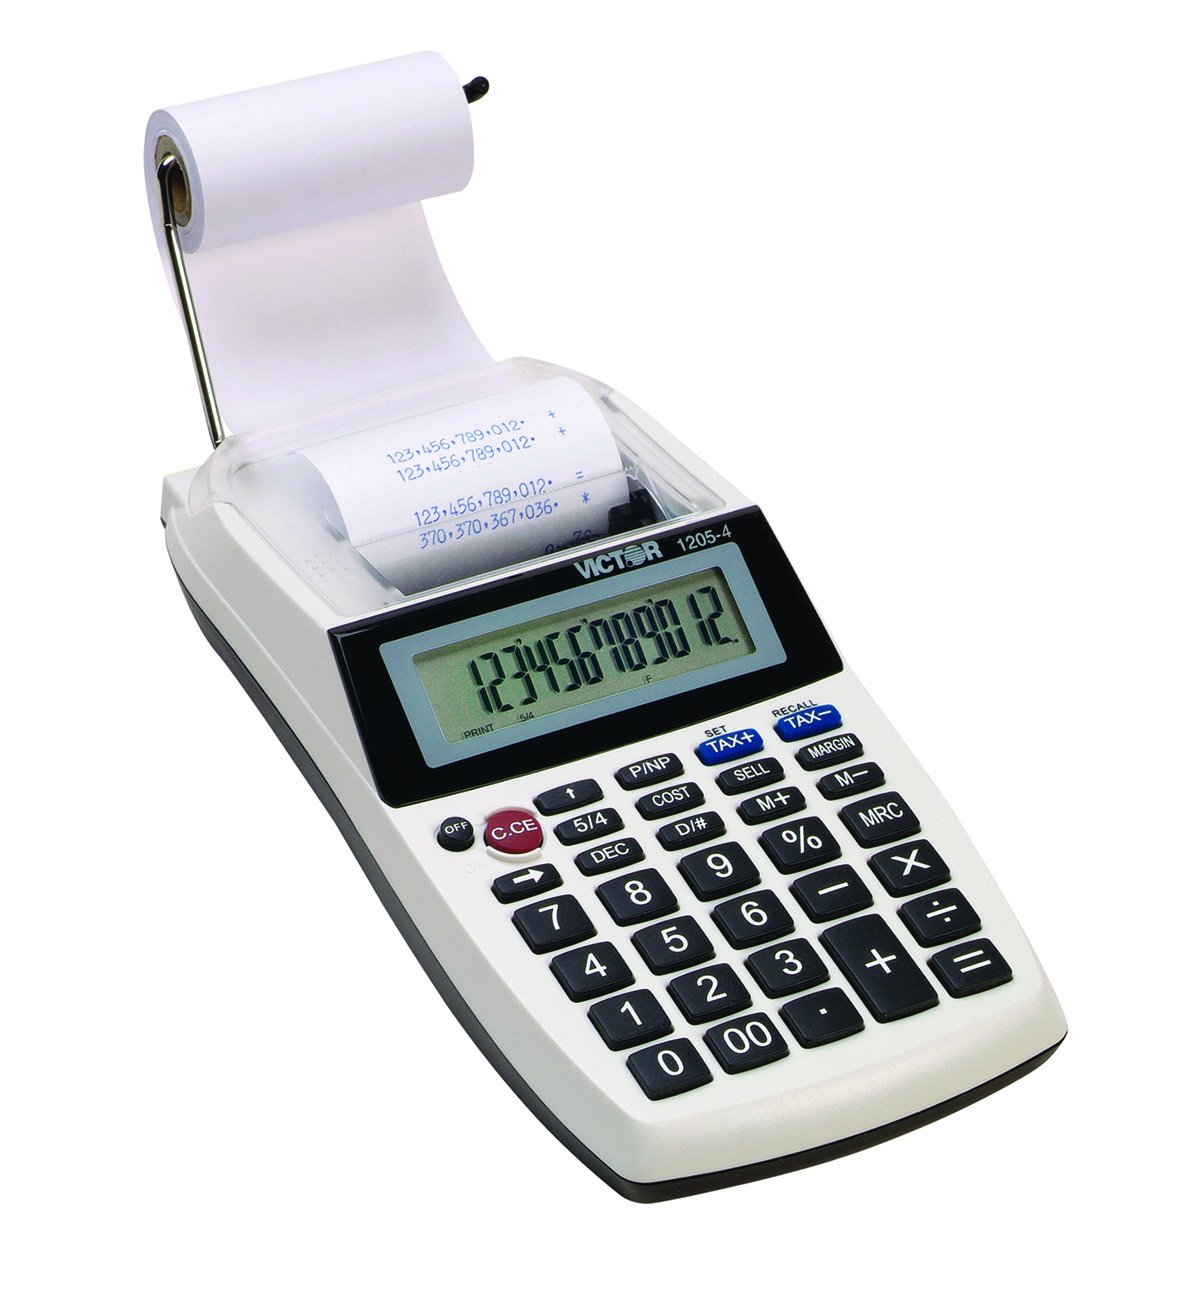 Victor 1205-4 12-Digit Portable Printing Calculator for Business and Office Use, 4X AA Battery Powered Adding Machine Caclulator with Tape, 2.0 Lines/Sec